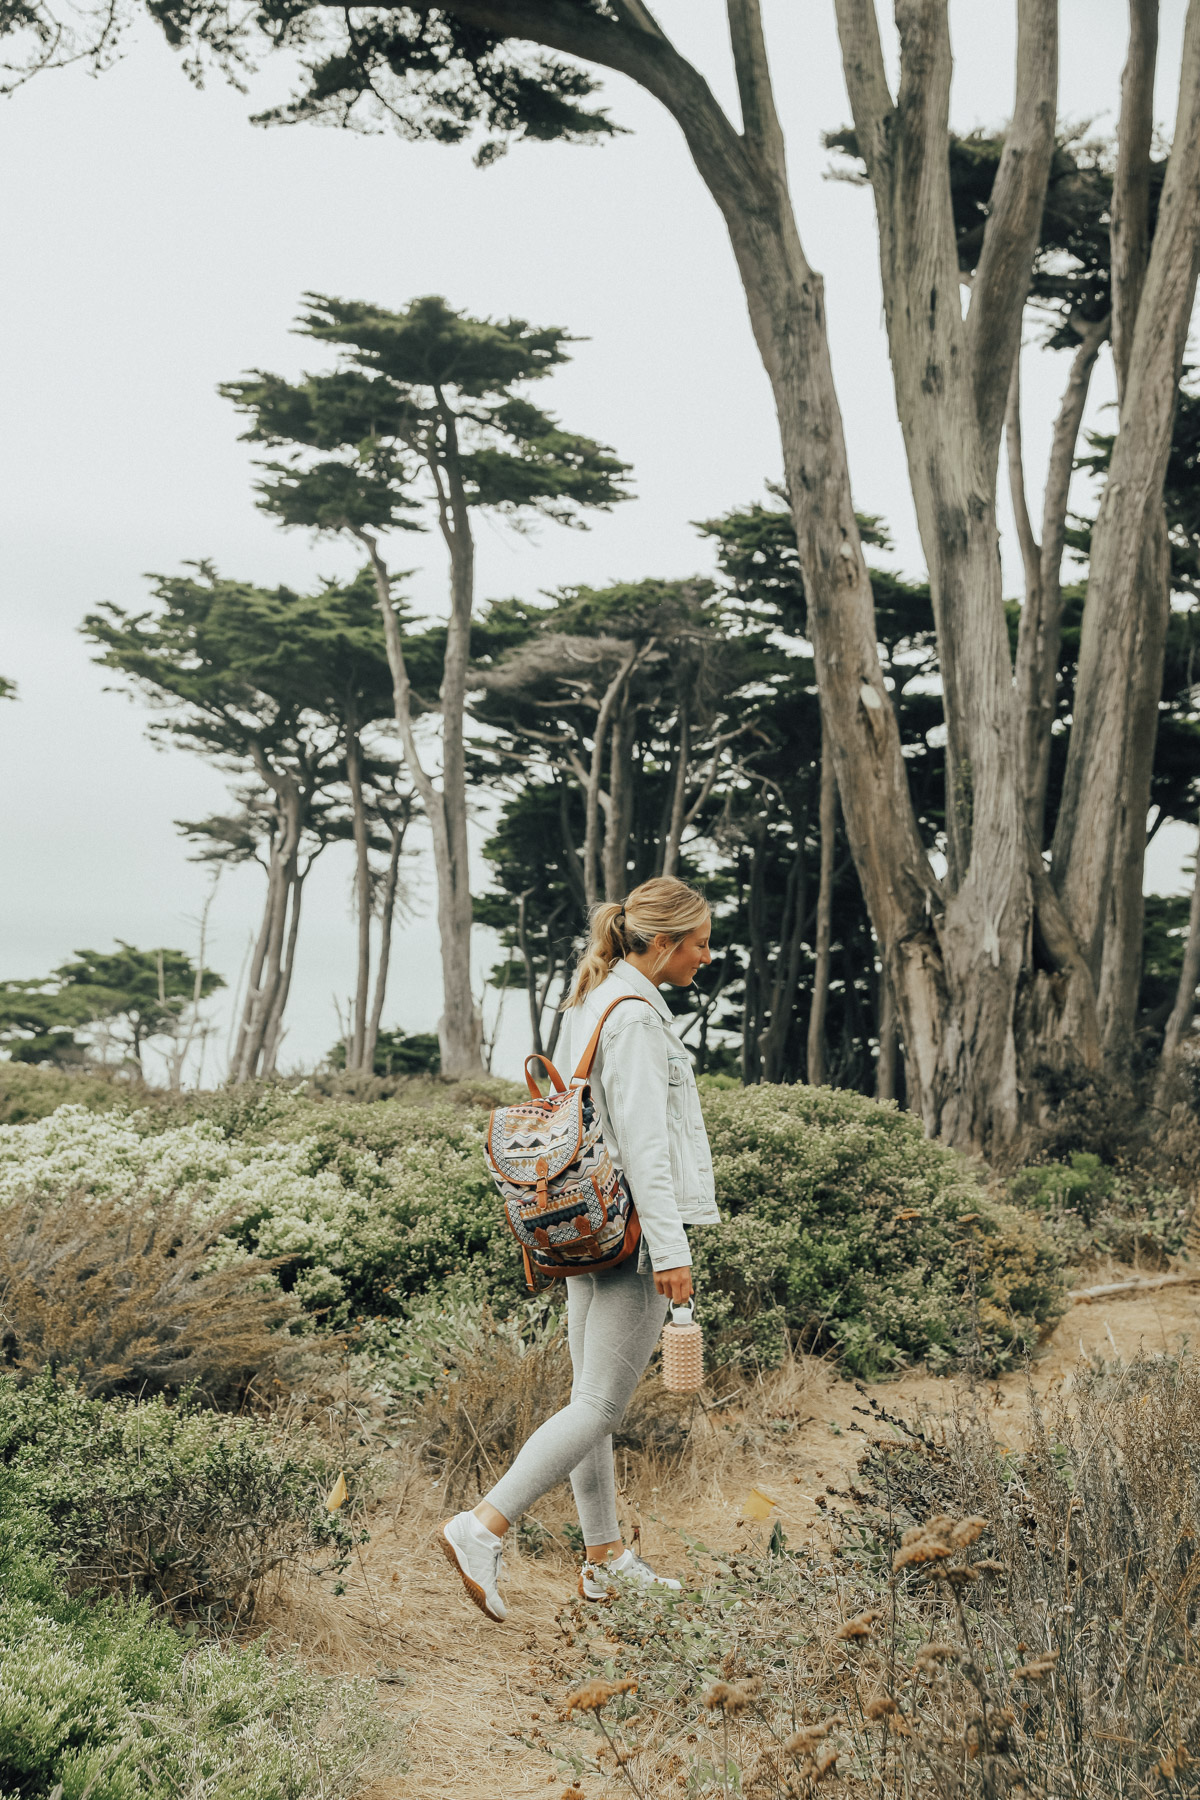 5 Ways to Get Outside More